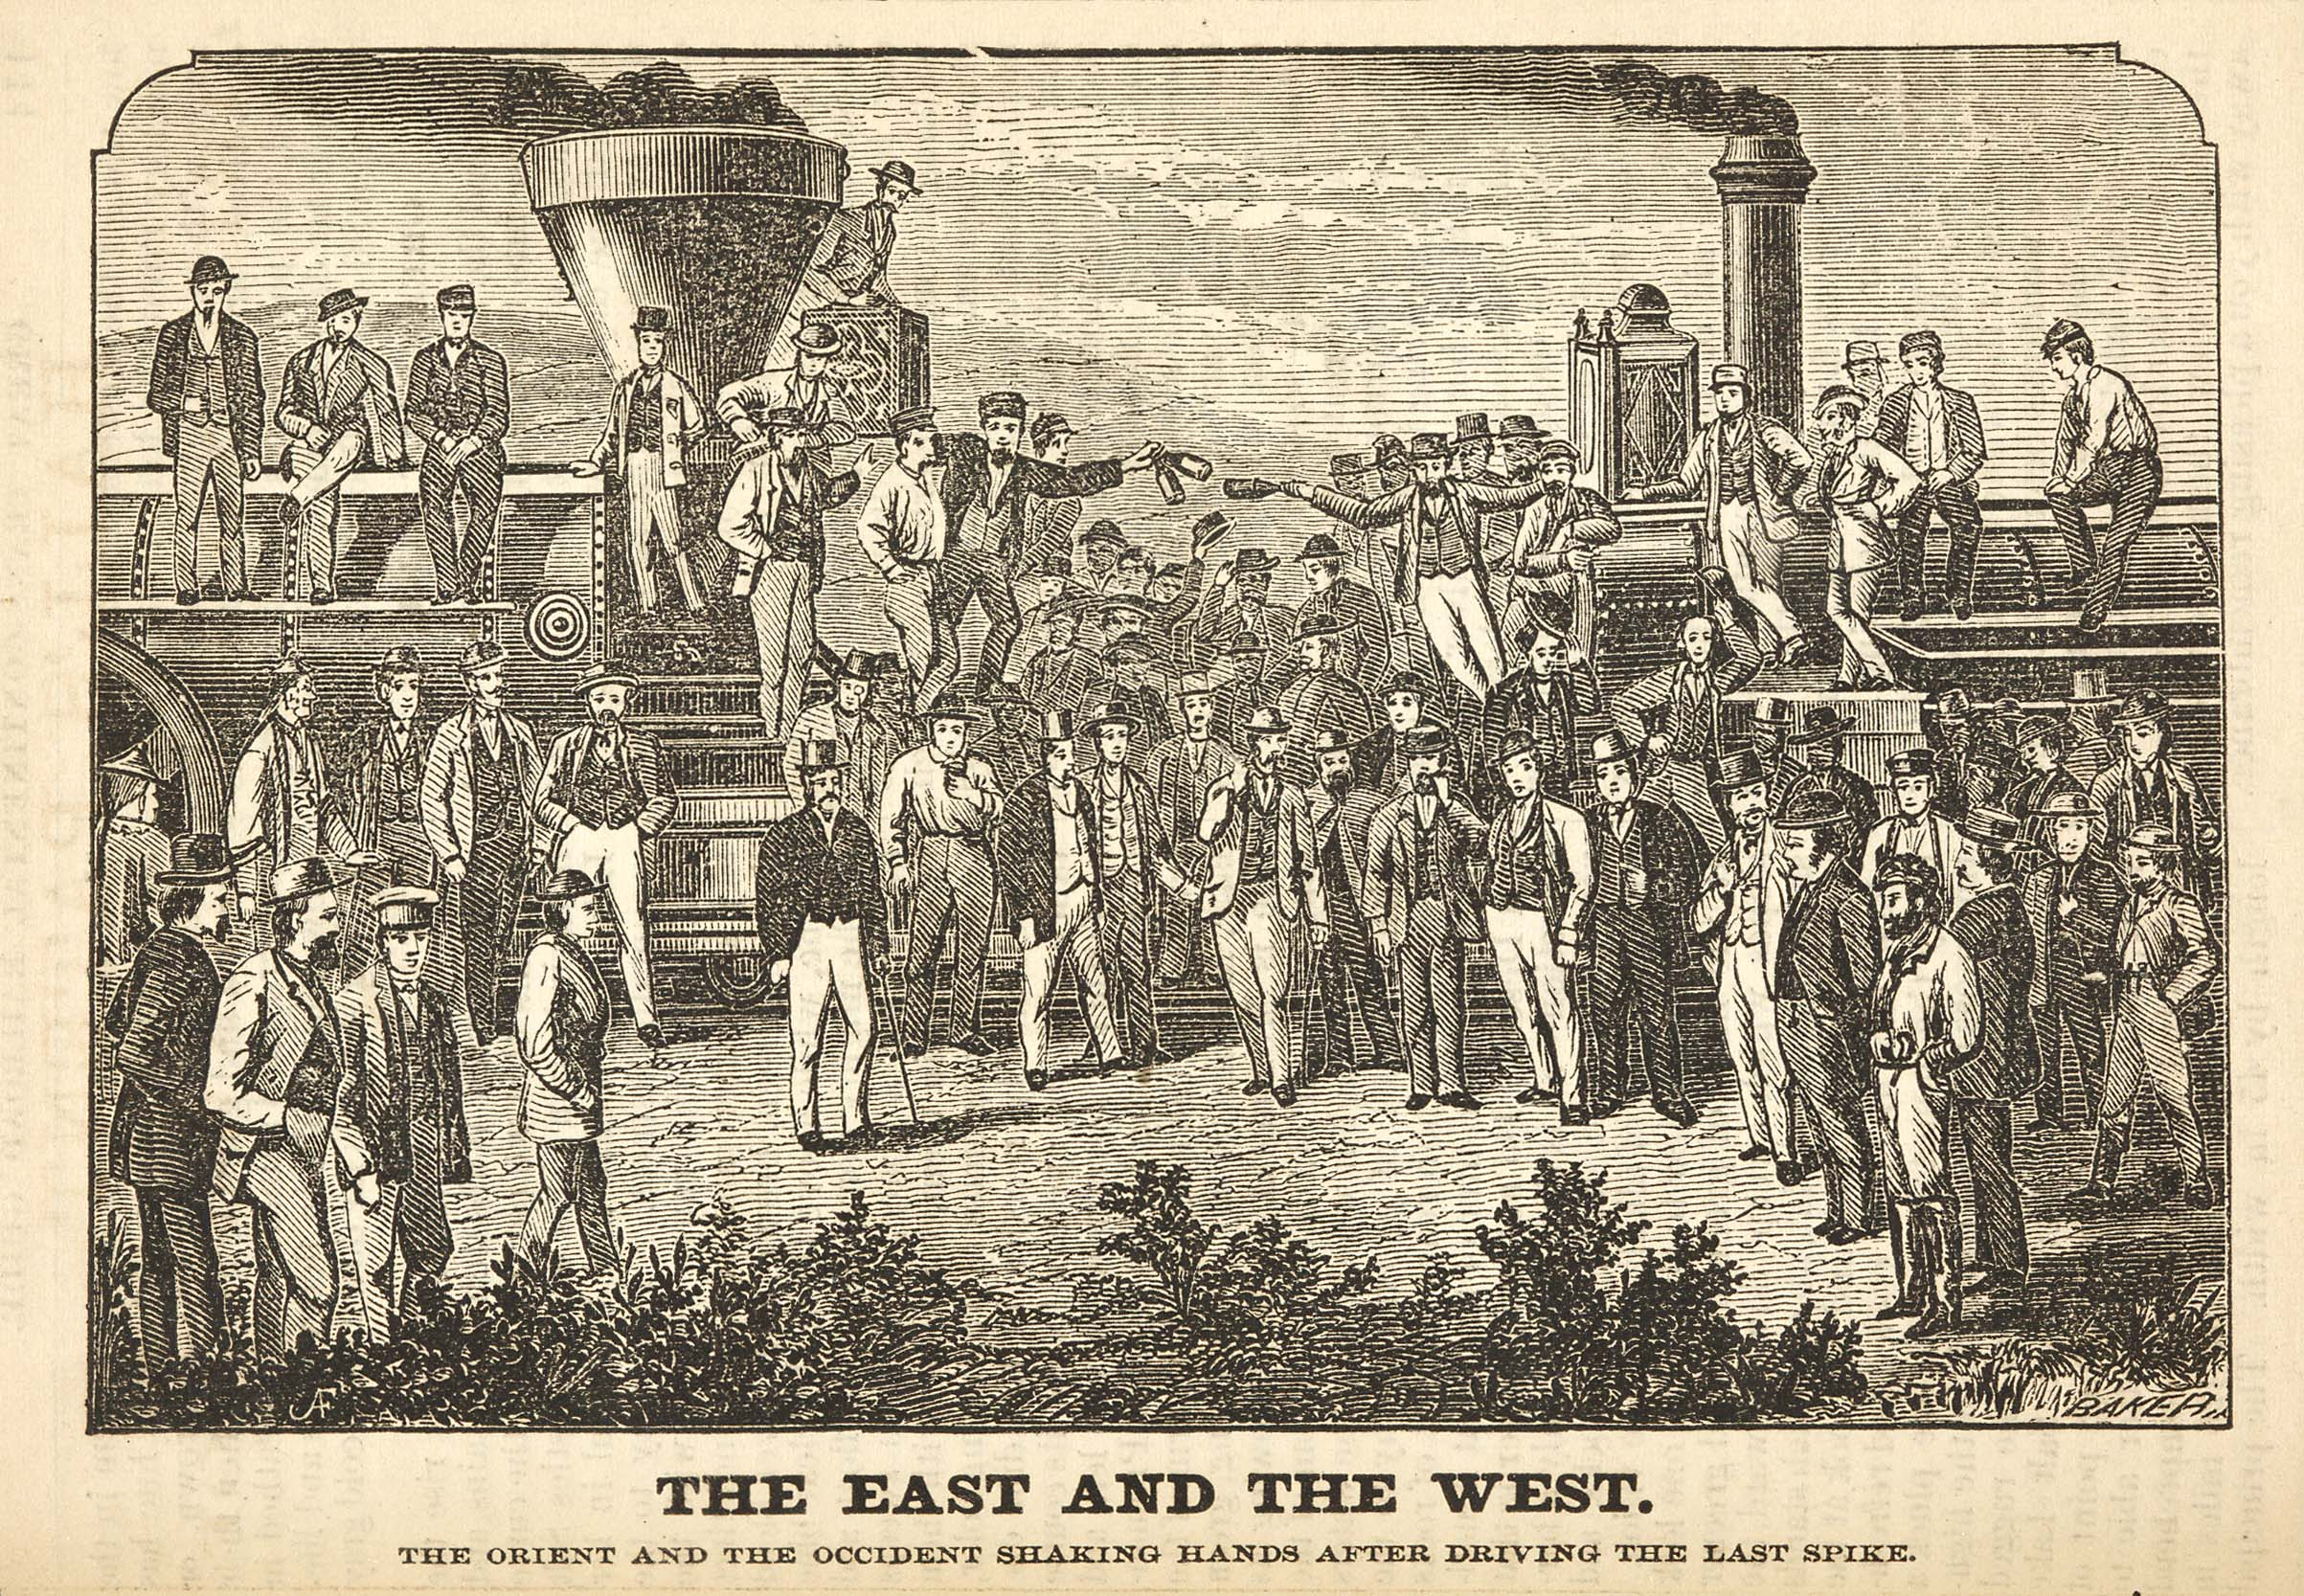 'The East and the West—The Last Spike,' from George Crofutt, 'Great Trans-Continental Tourist Guide' (New York, 1870). Huntington Library, Art Collections, and Botanical Gardens.